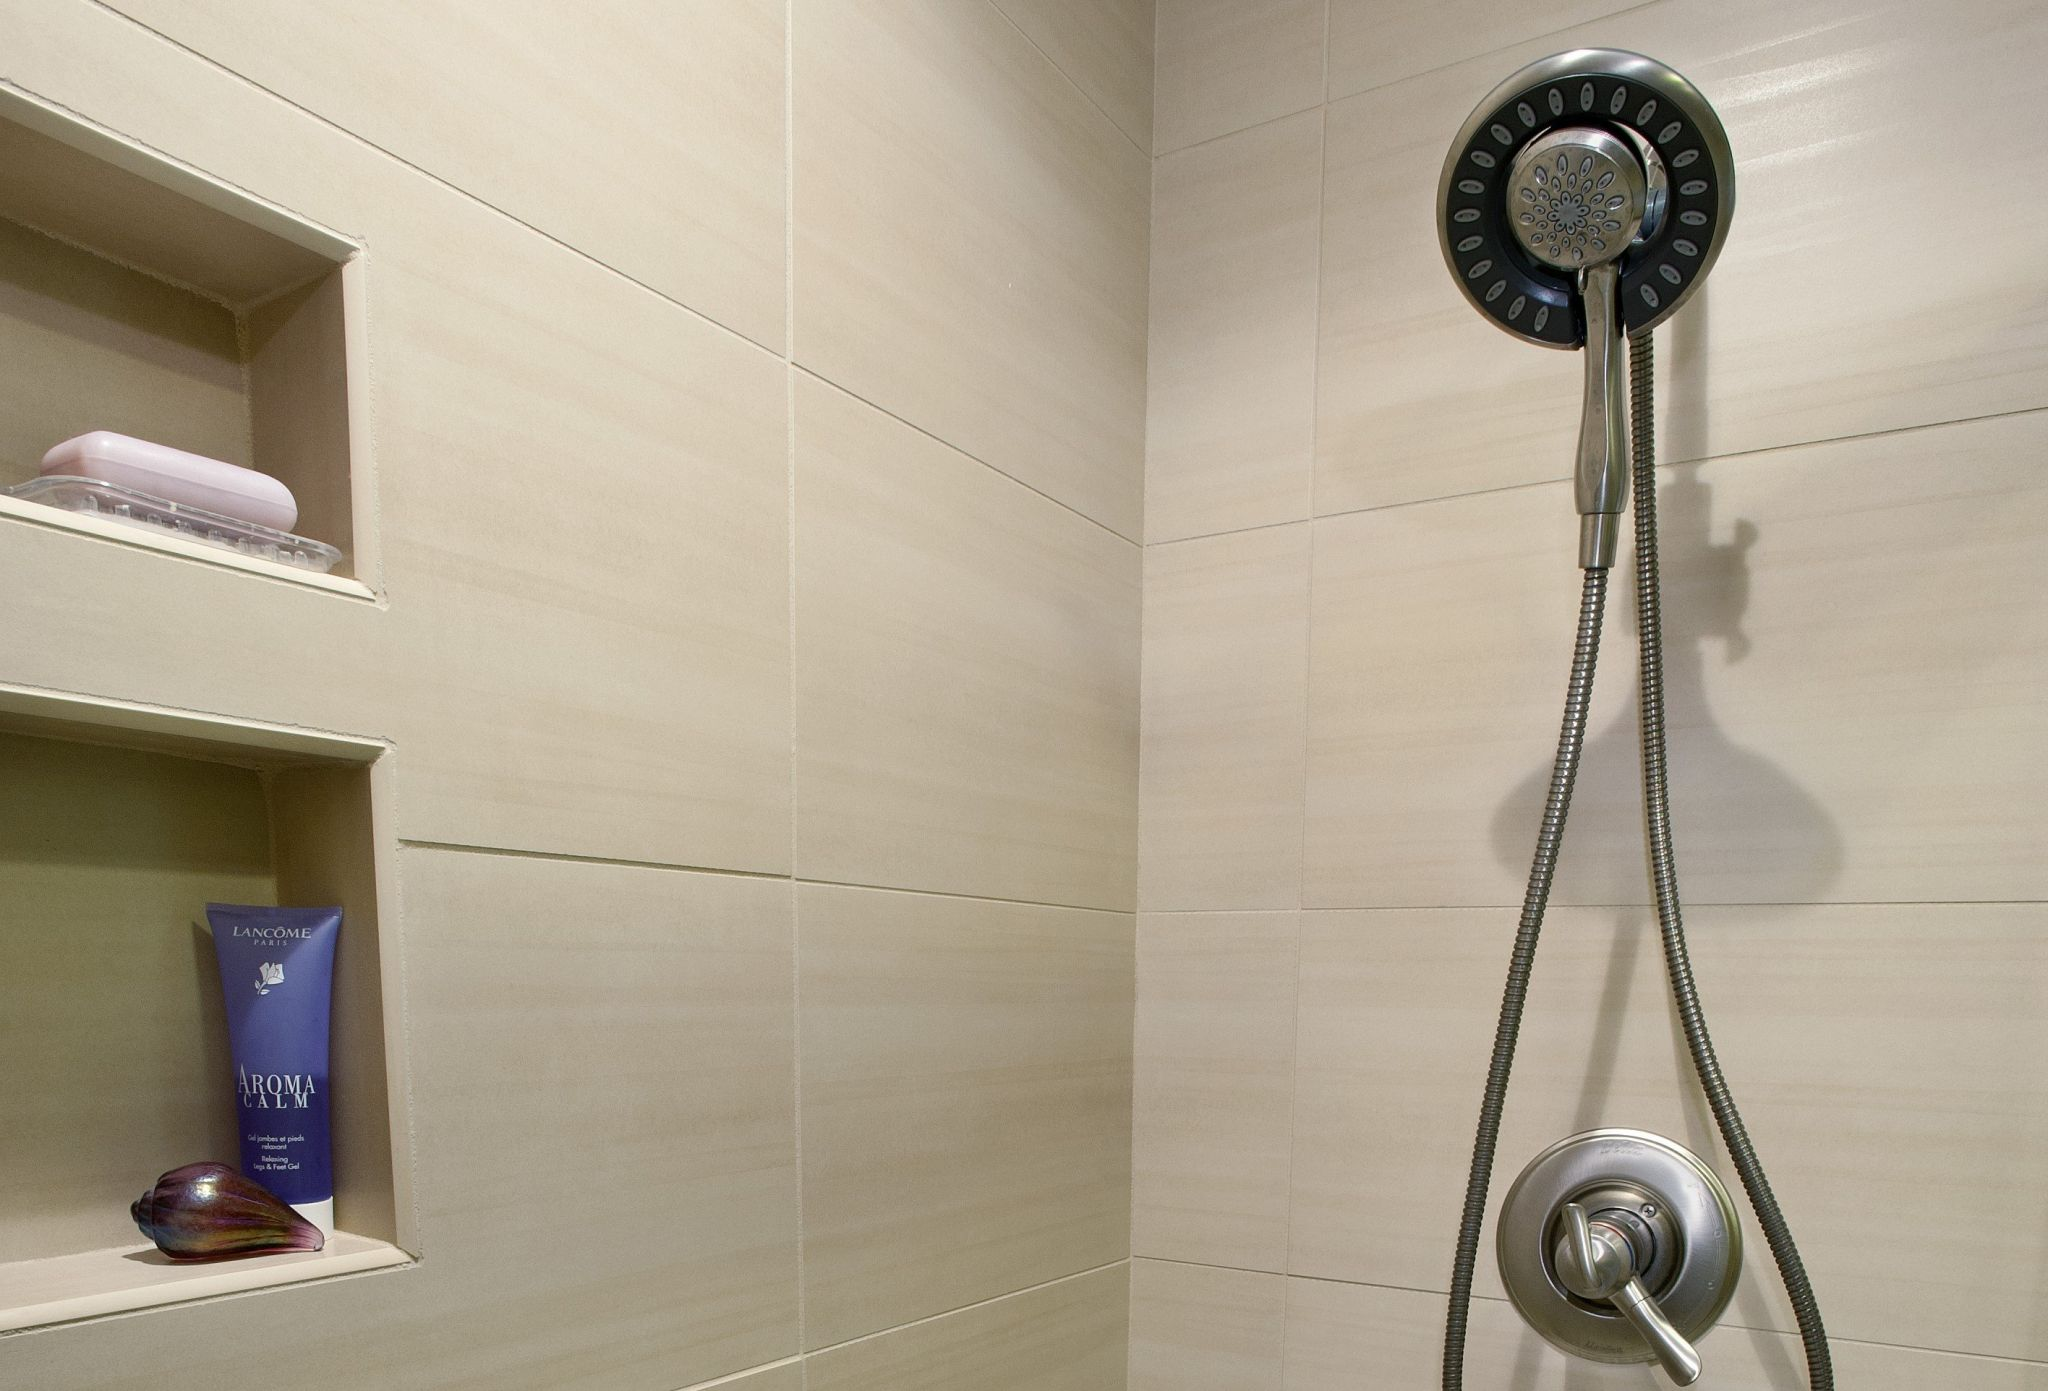 Shower with a brushed nickel, removable shower head